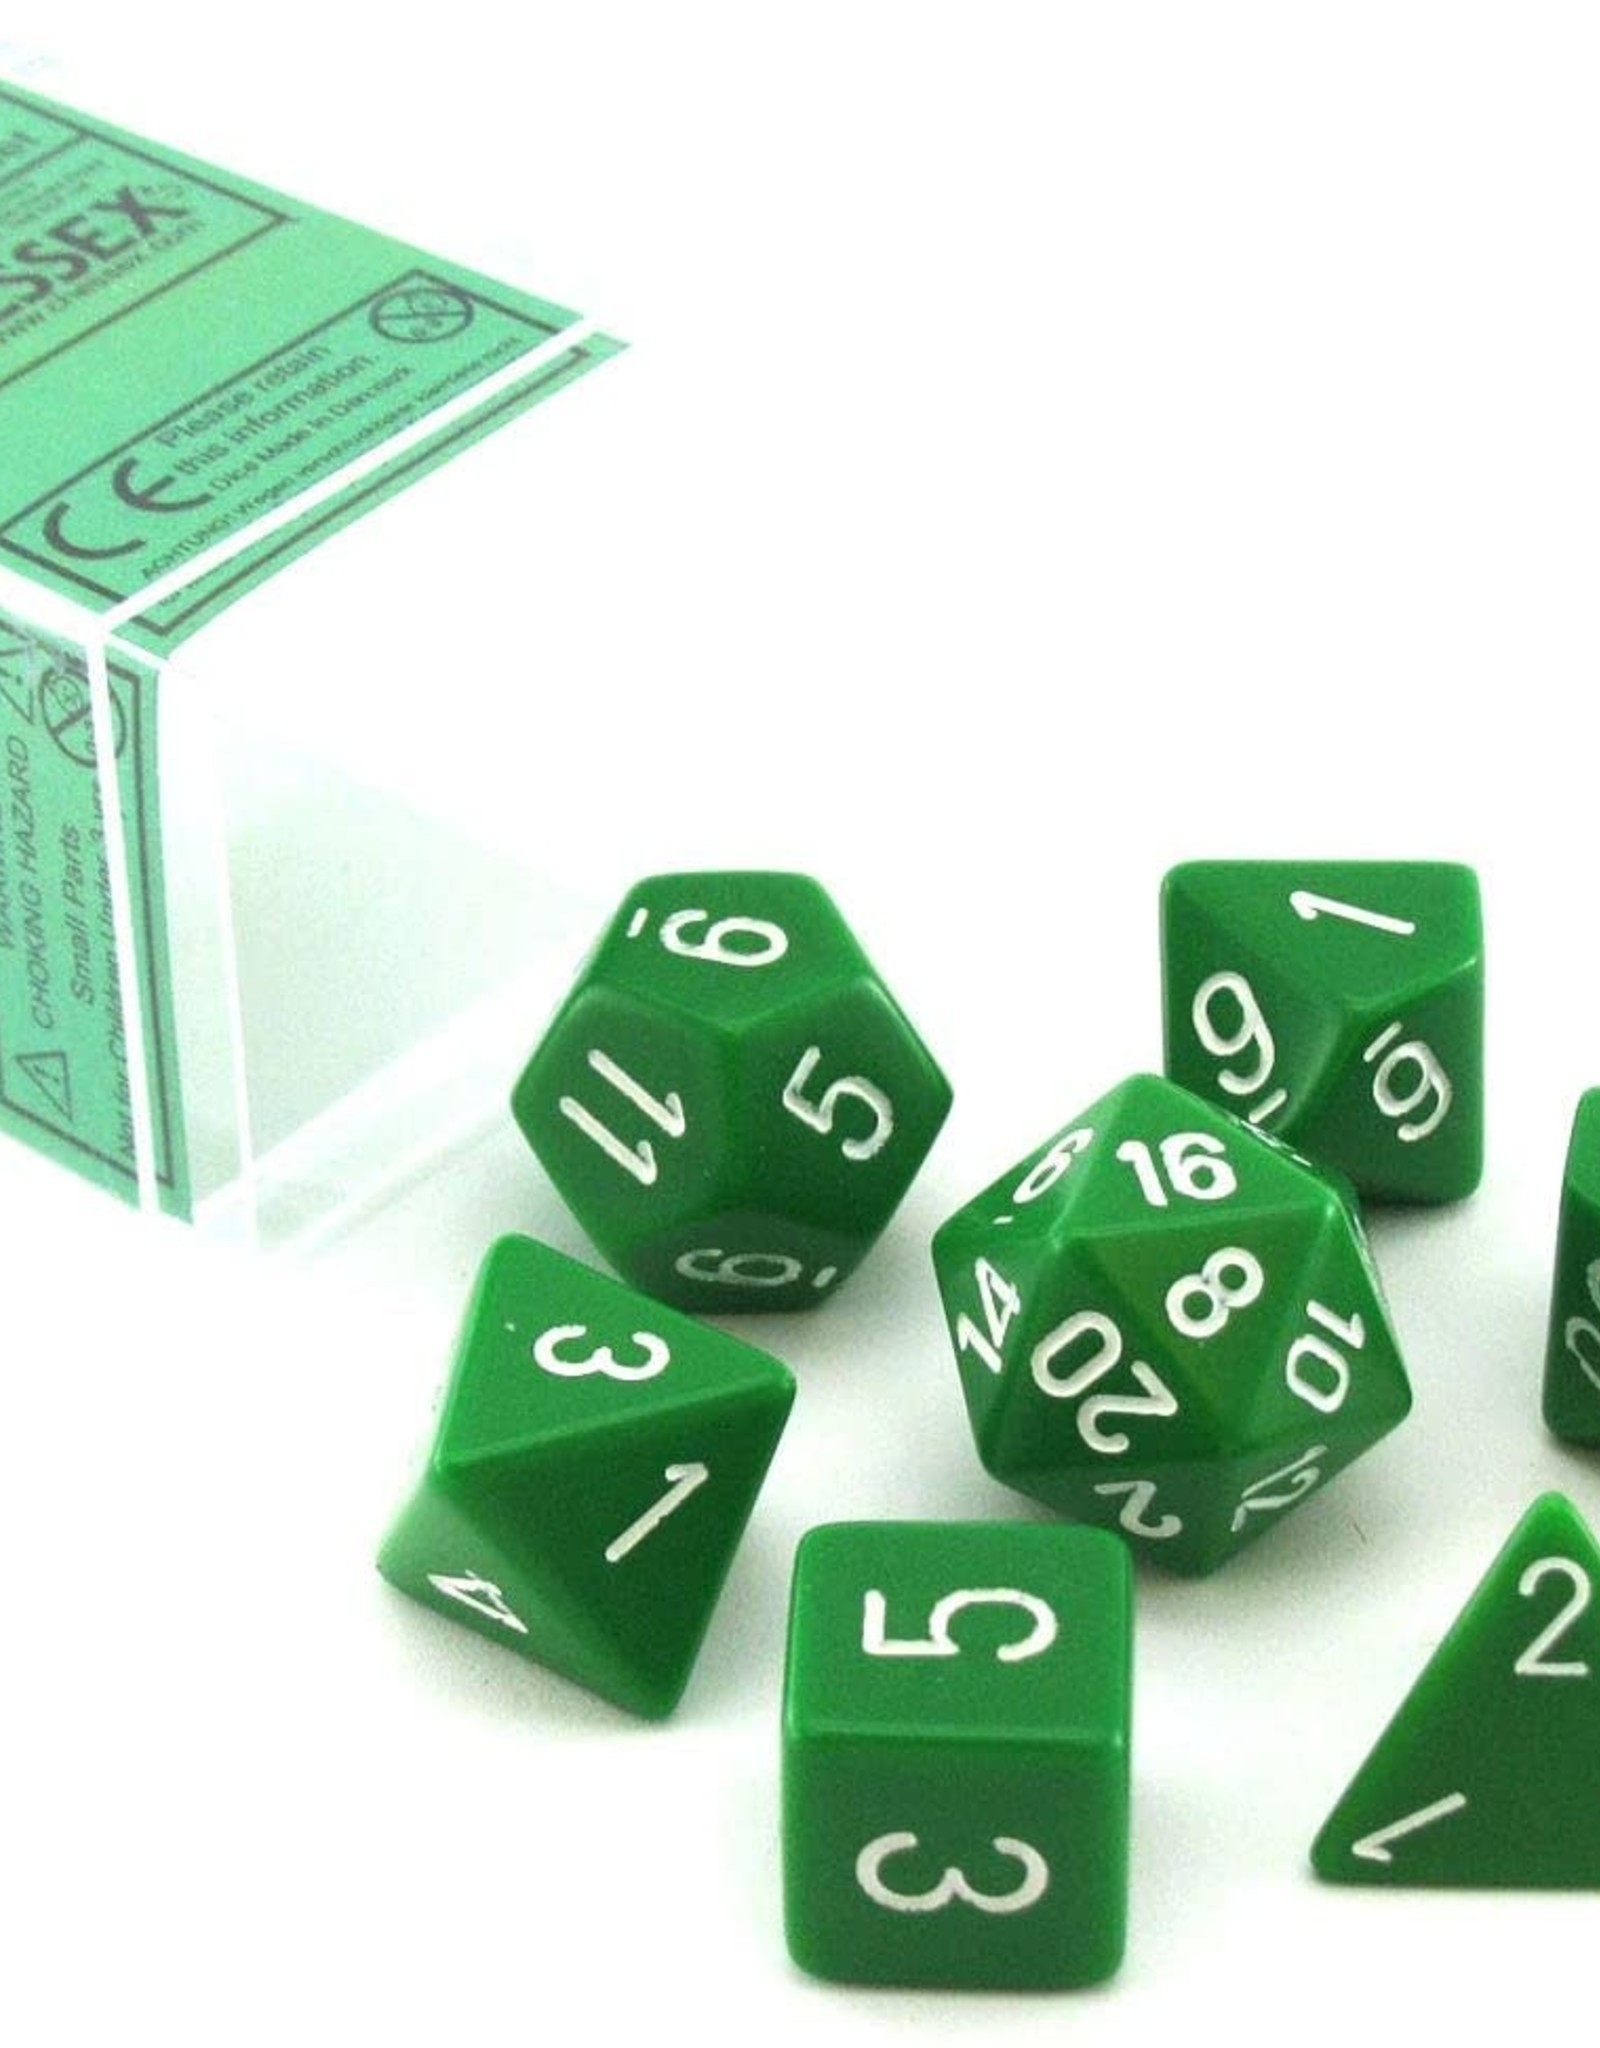 Chessex Chessex Polyhedral 7-Die Opaque Dice Set - Green with White